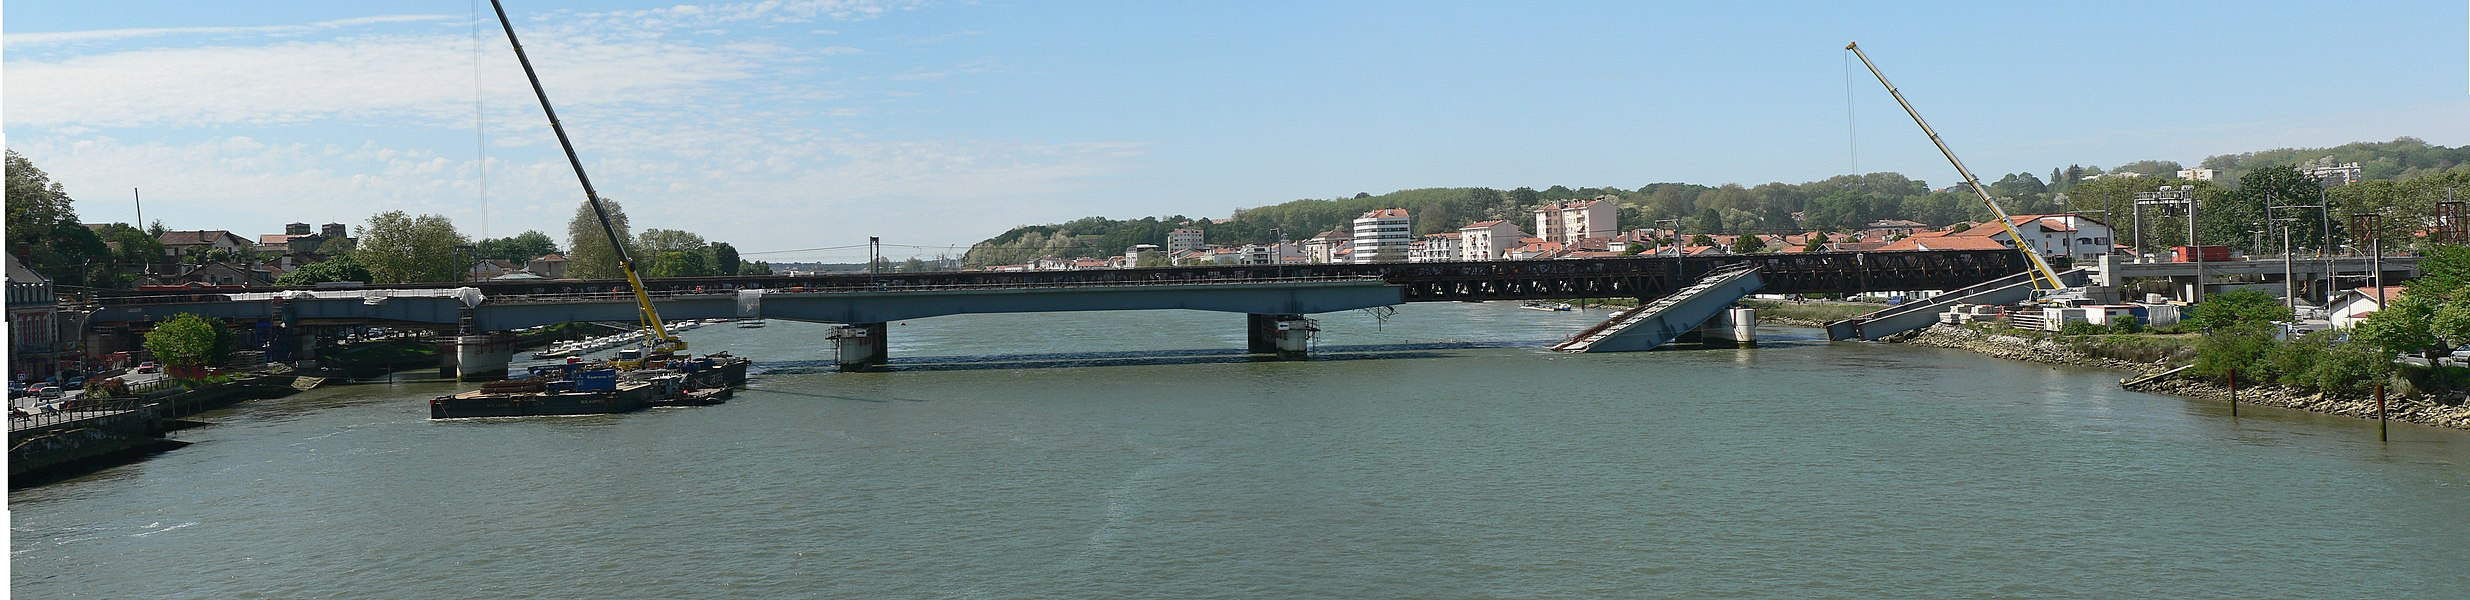 Railway bridge over the Adour River in Bayonne broken after the implementation of the last span.